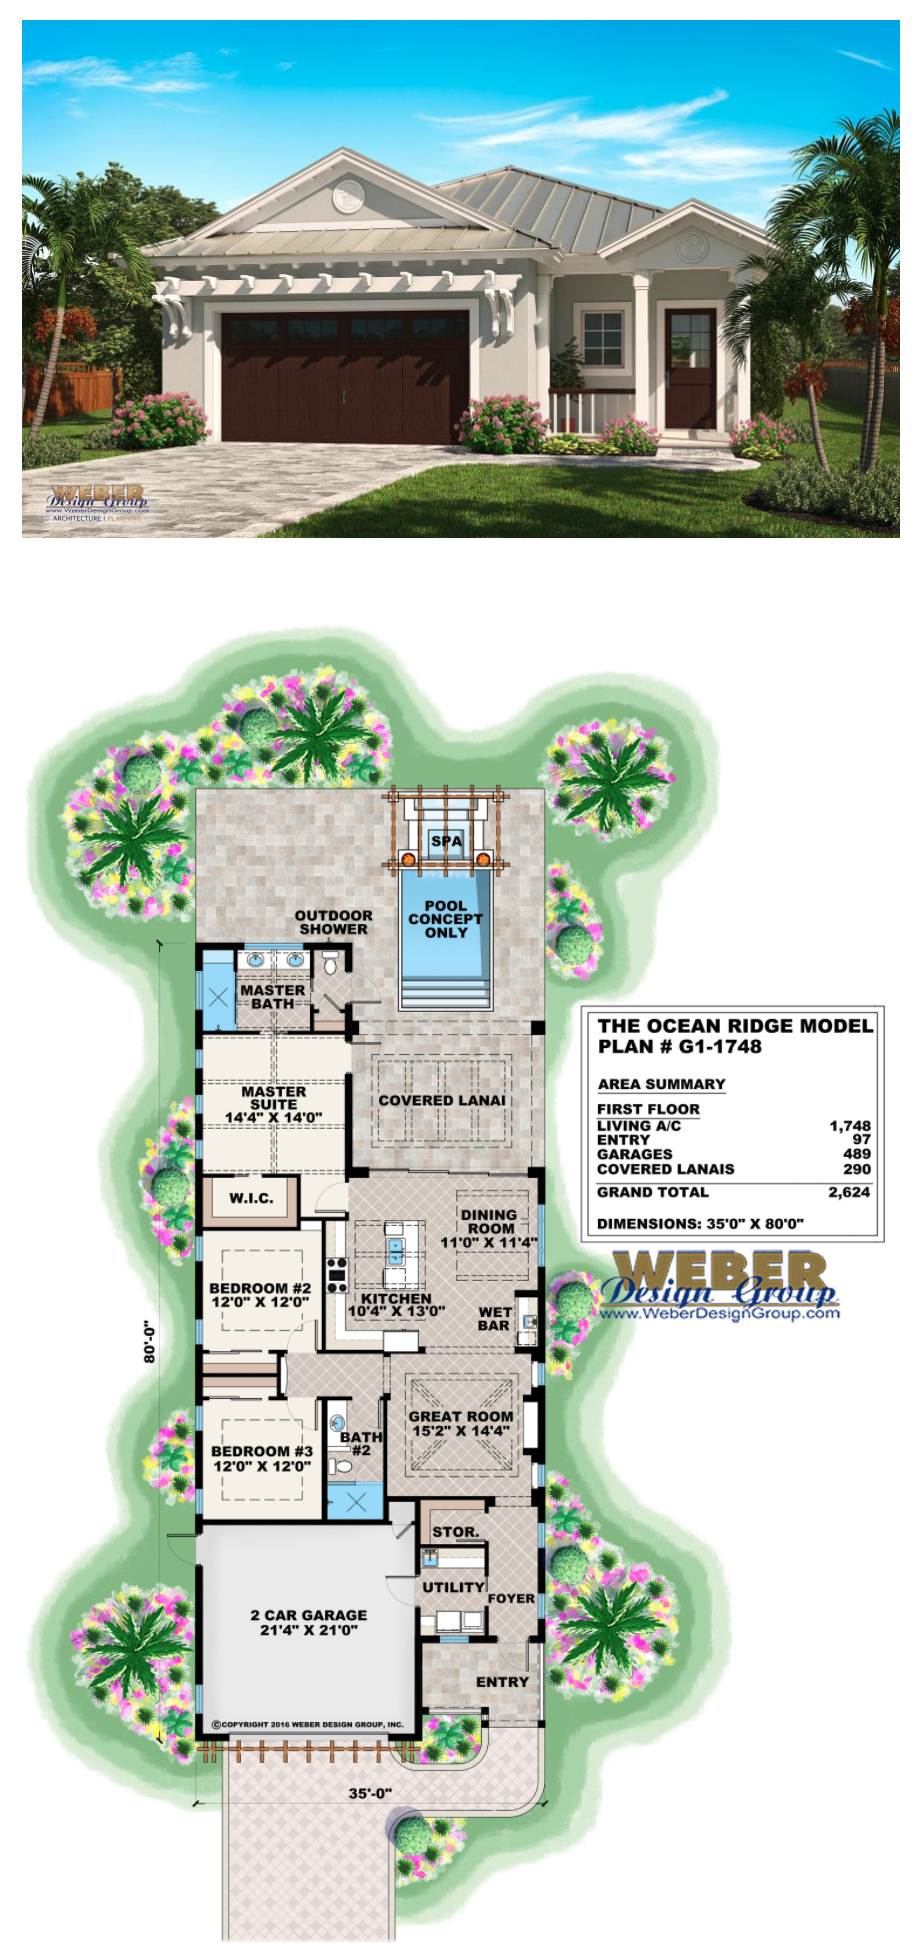 The ocean ridge model is a narrow lot house plan with a transitional